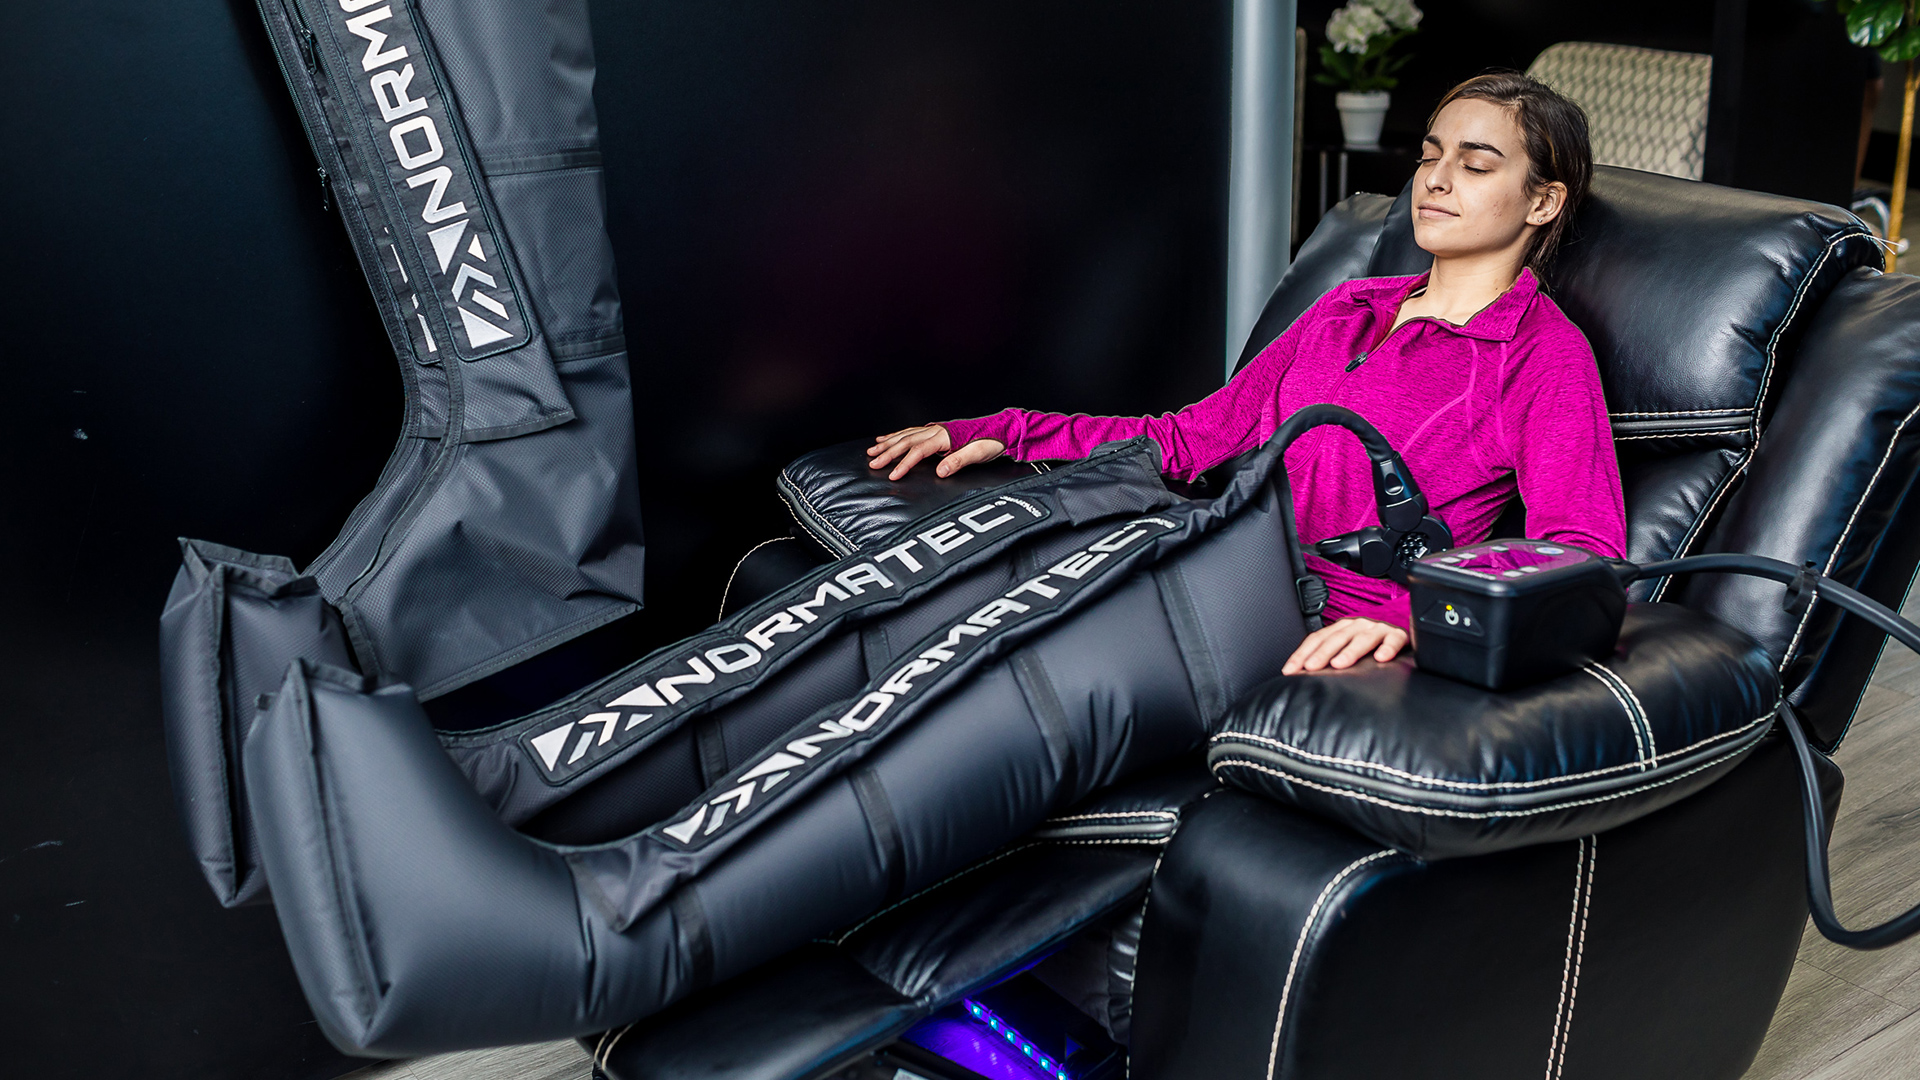 guest relaxing in a recliner with normatec leg attachments on legs